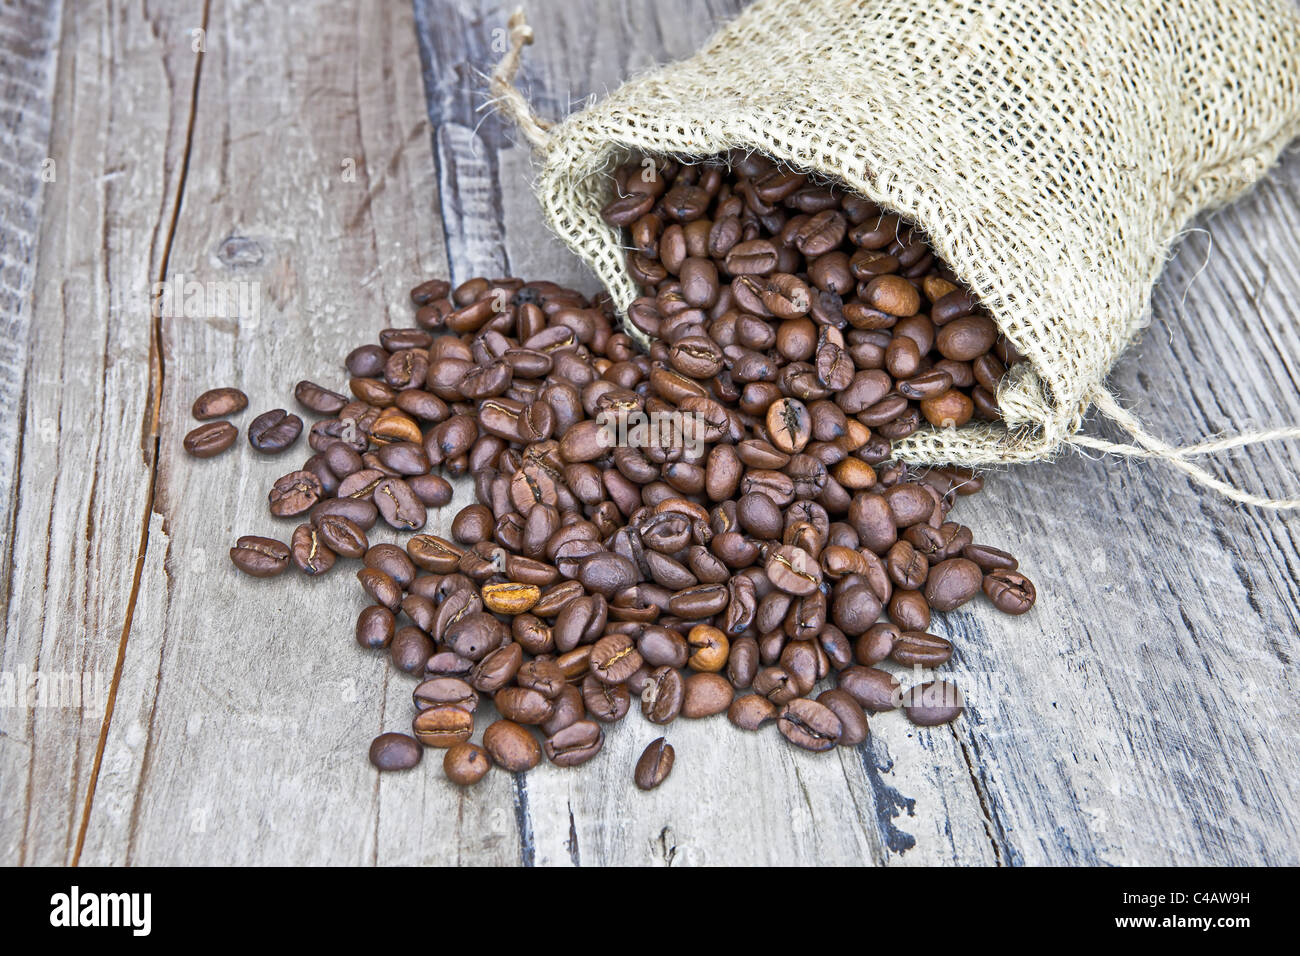 Coffee beans in a jute bag on a wooden table - Stock Image